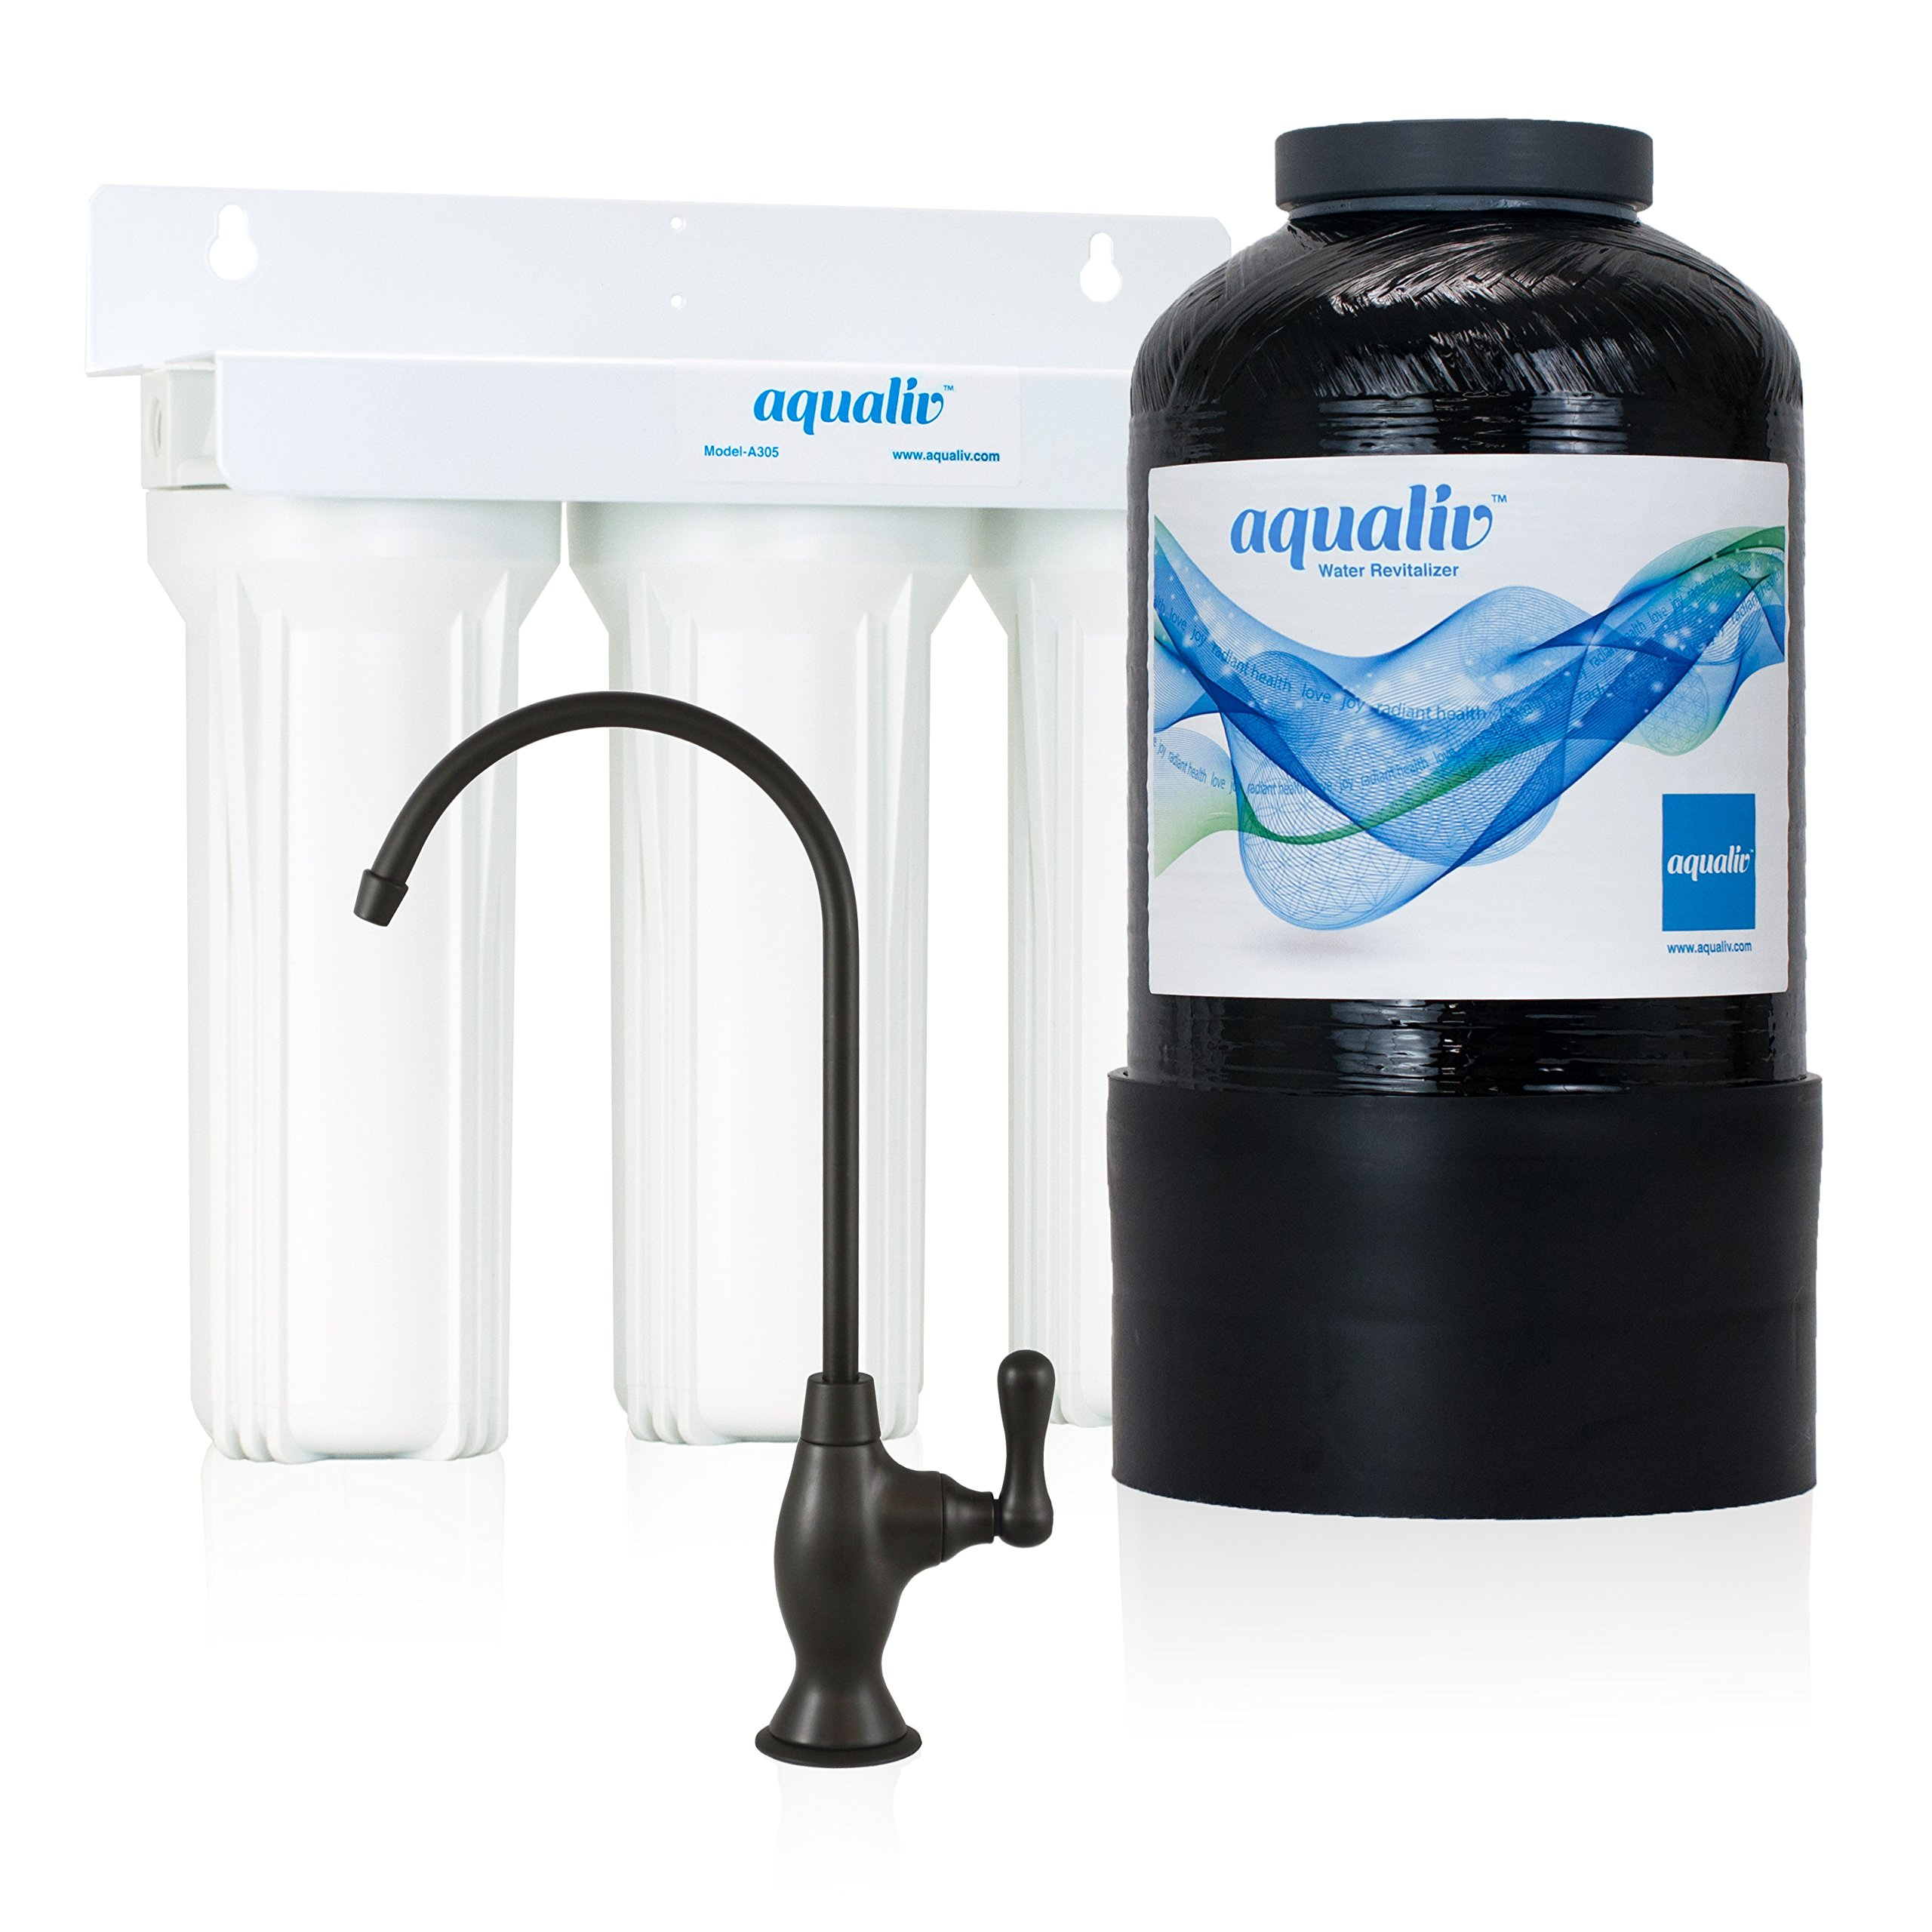 AquaLiv Water System A305 w/ Contemporary Oil Rubbed Bronze Faucet - pH Alkaline Water, Ionizer Machine, Structured Water, Water Filter, Water Purifier by AquaLiv